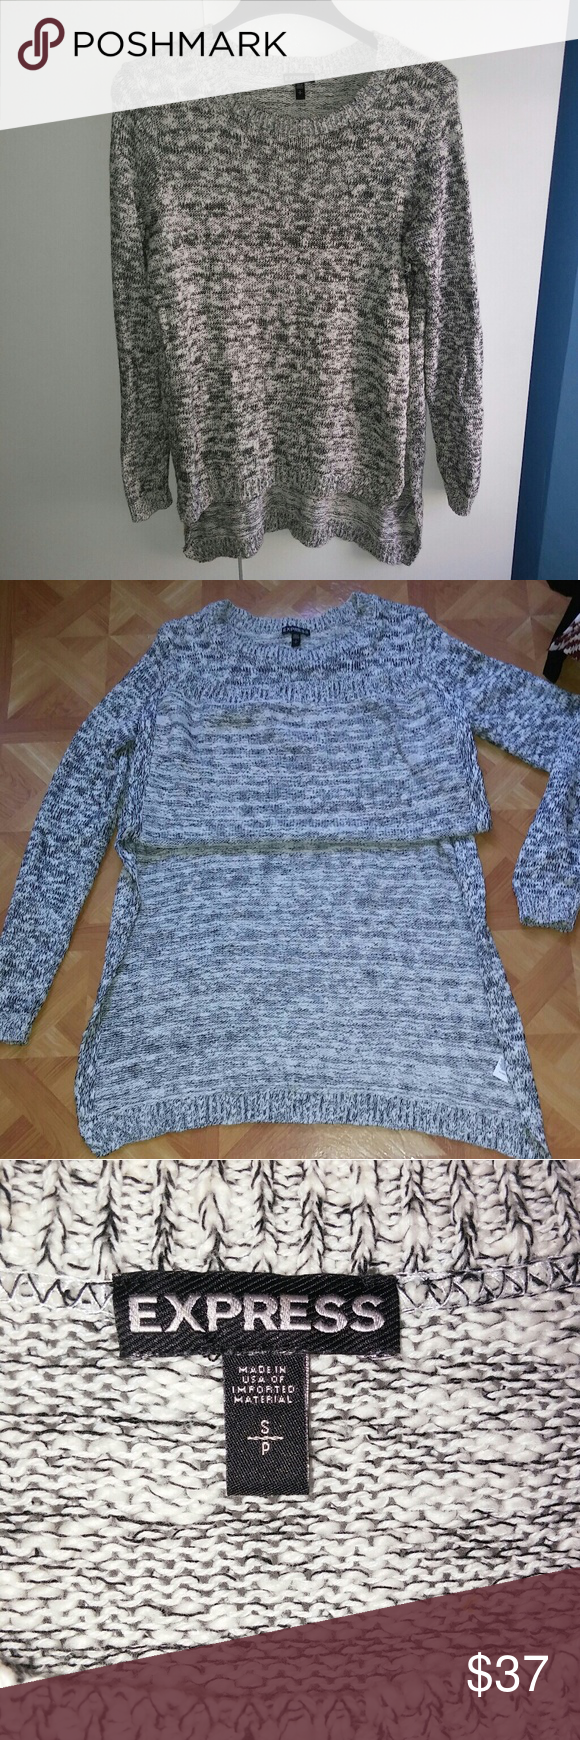 fbed3fa727d5eb 👌Slide split long knit sweater Show your chic and stylish style with this  unique knitted